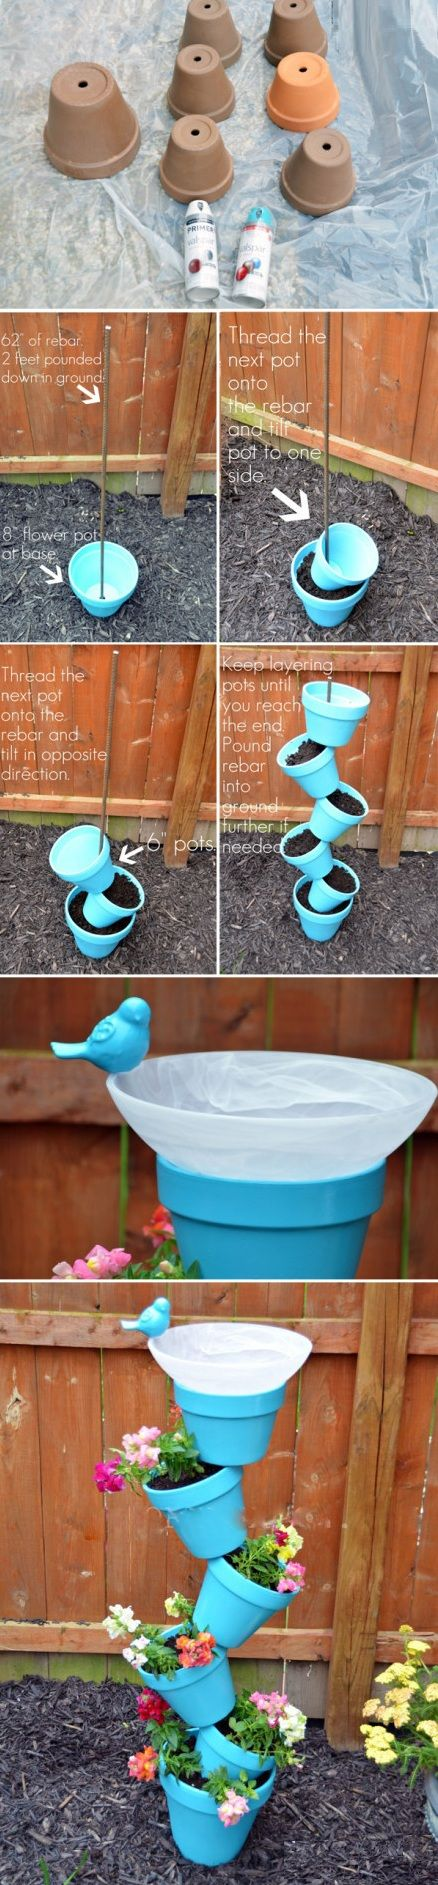 DIY: Bird Bath/Flowerpot Holder